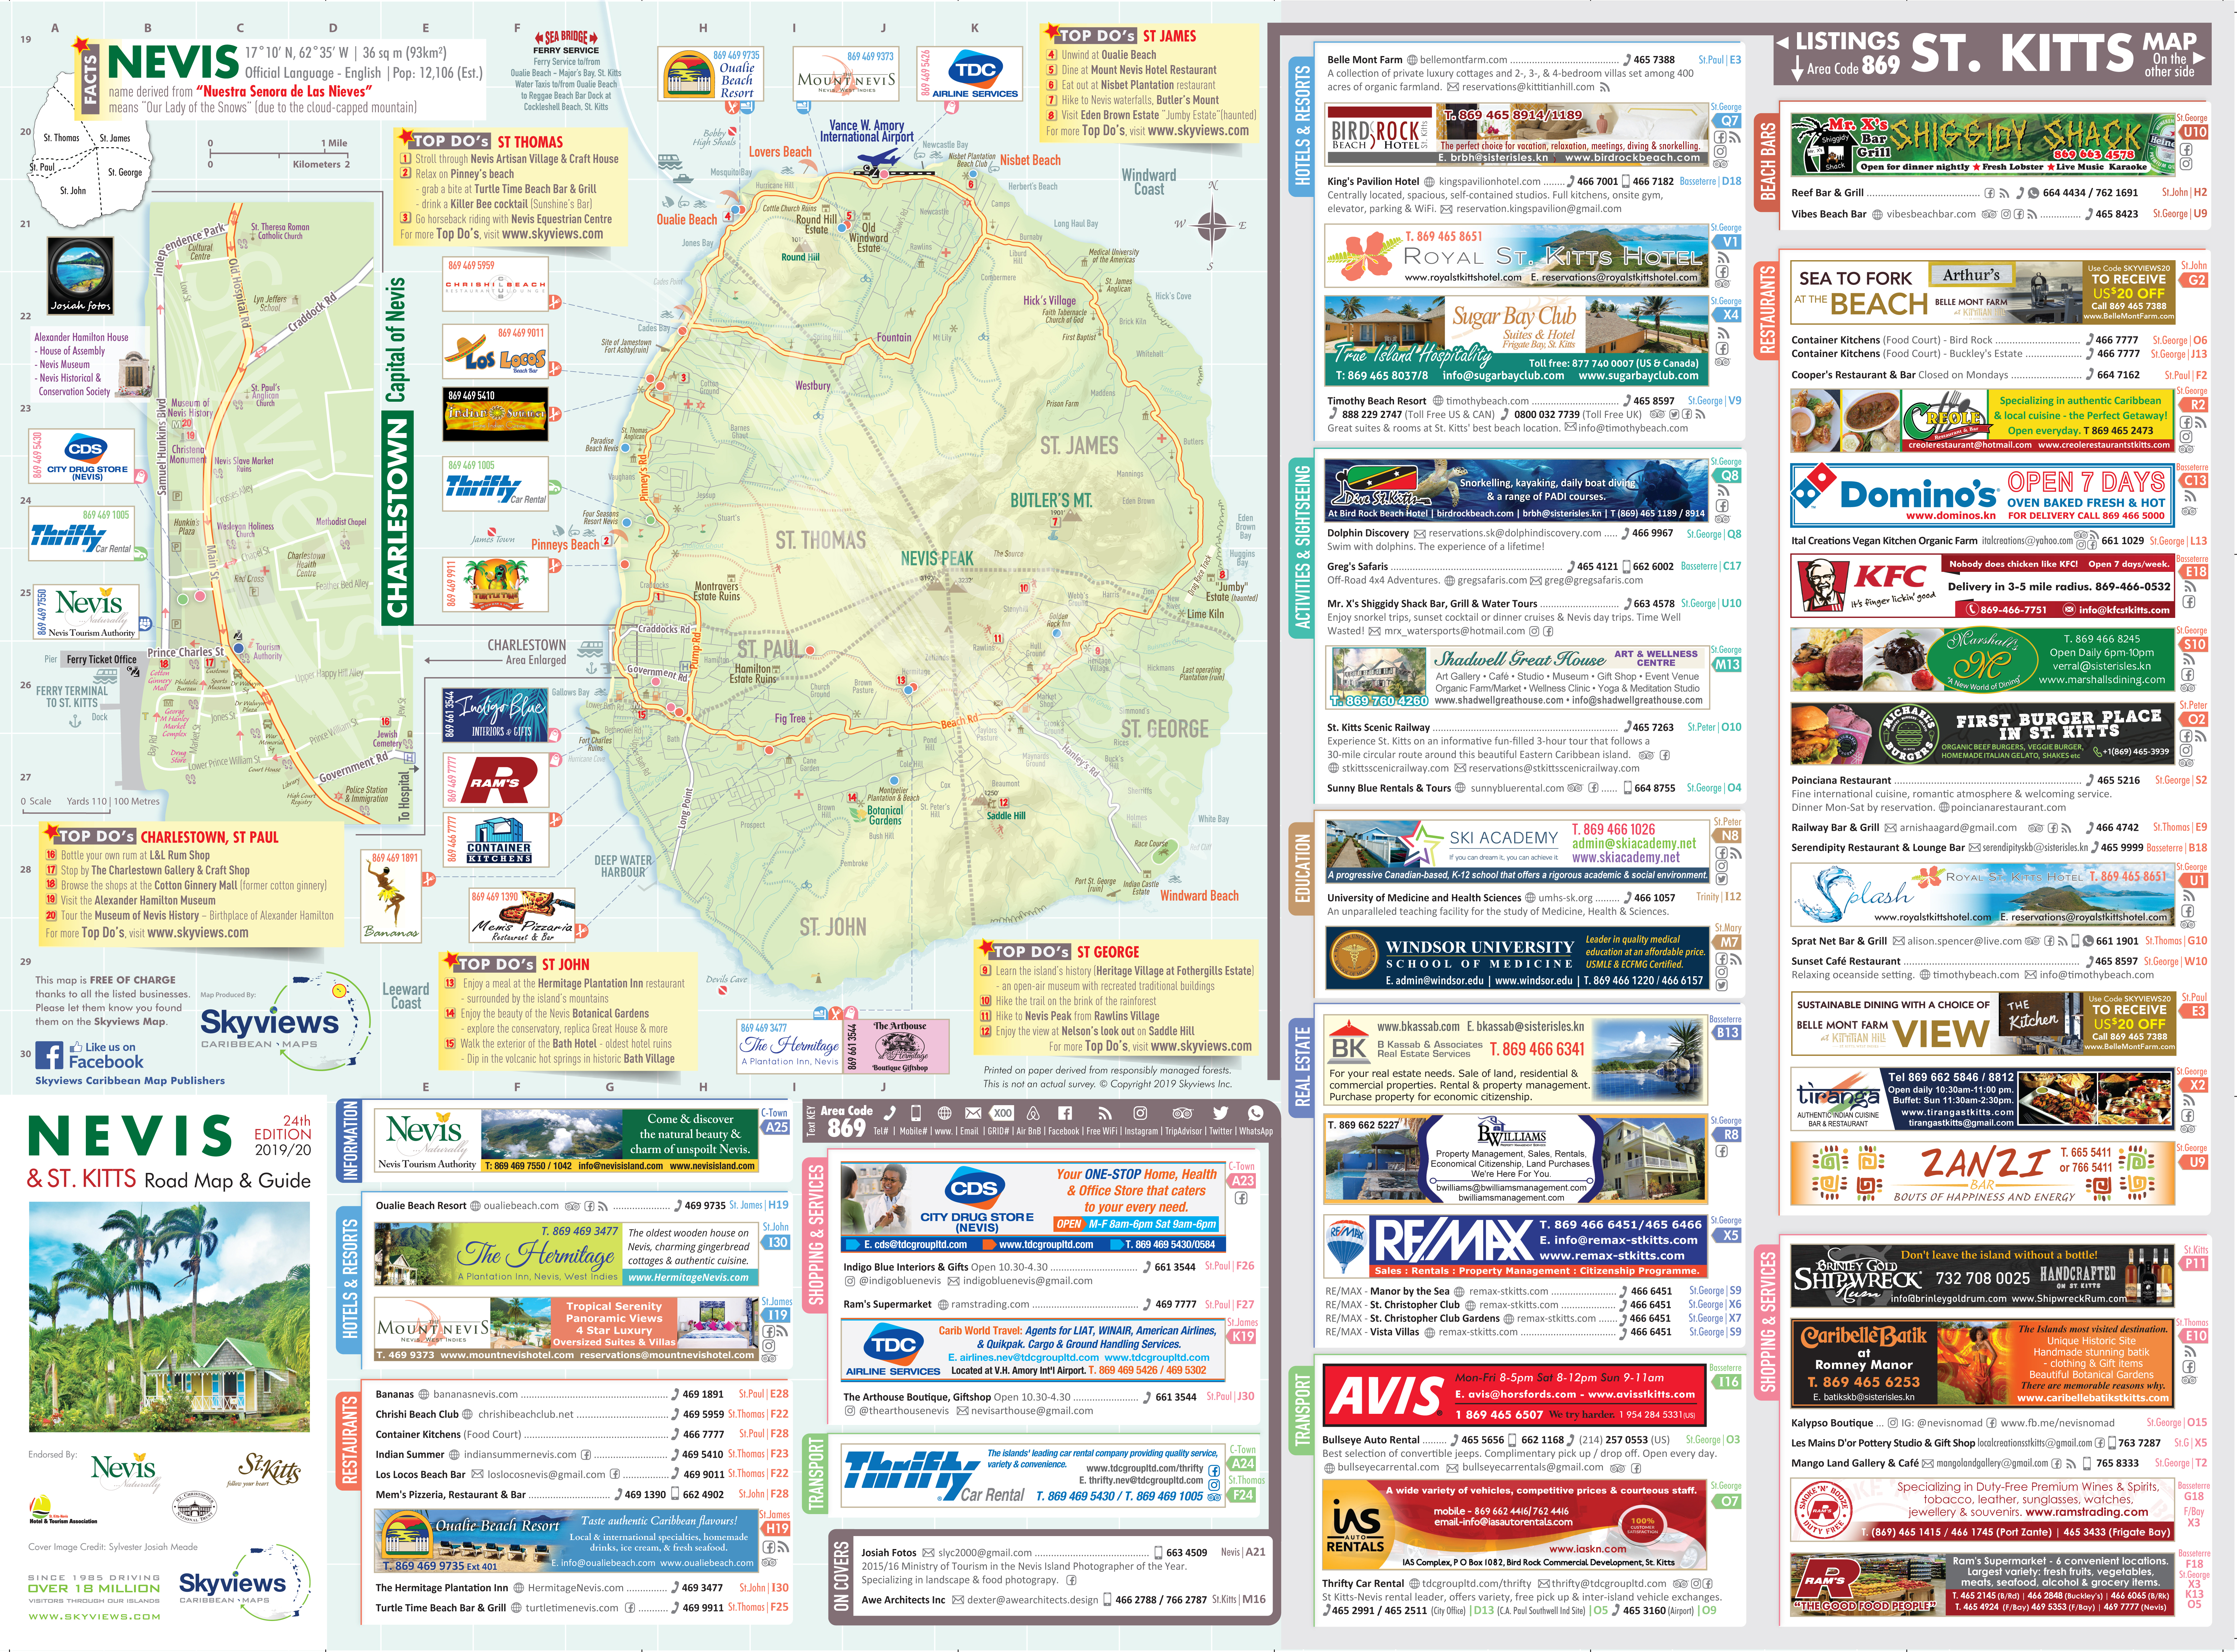 Map of St. Kitts & Nevis - Caribbean Islands Maps and Guides